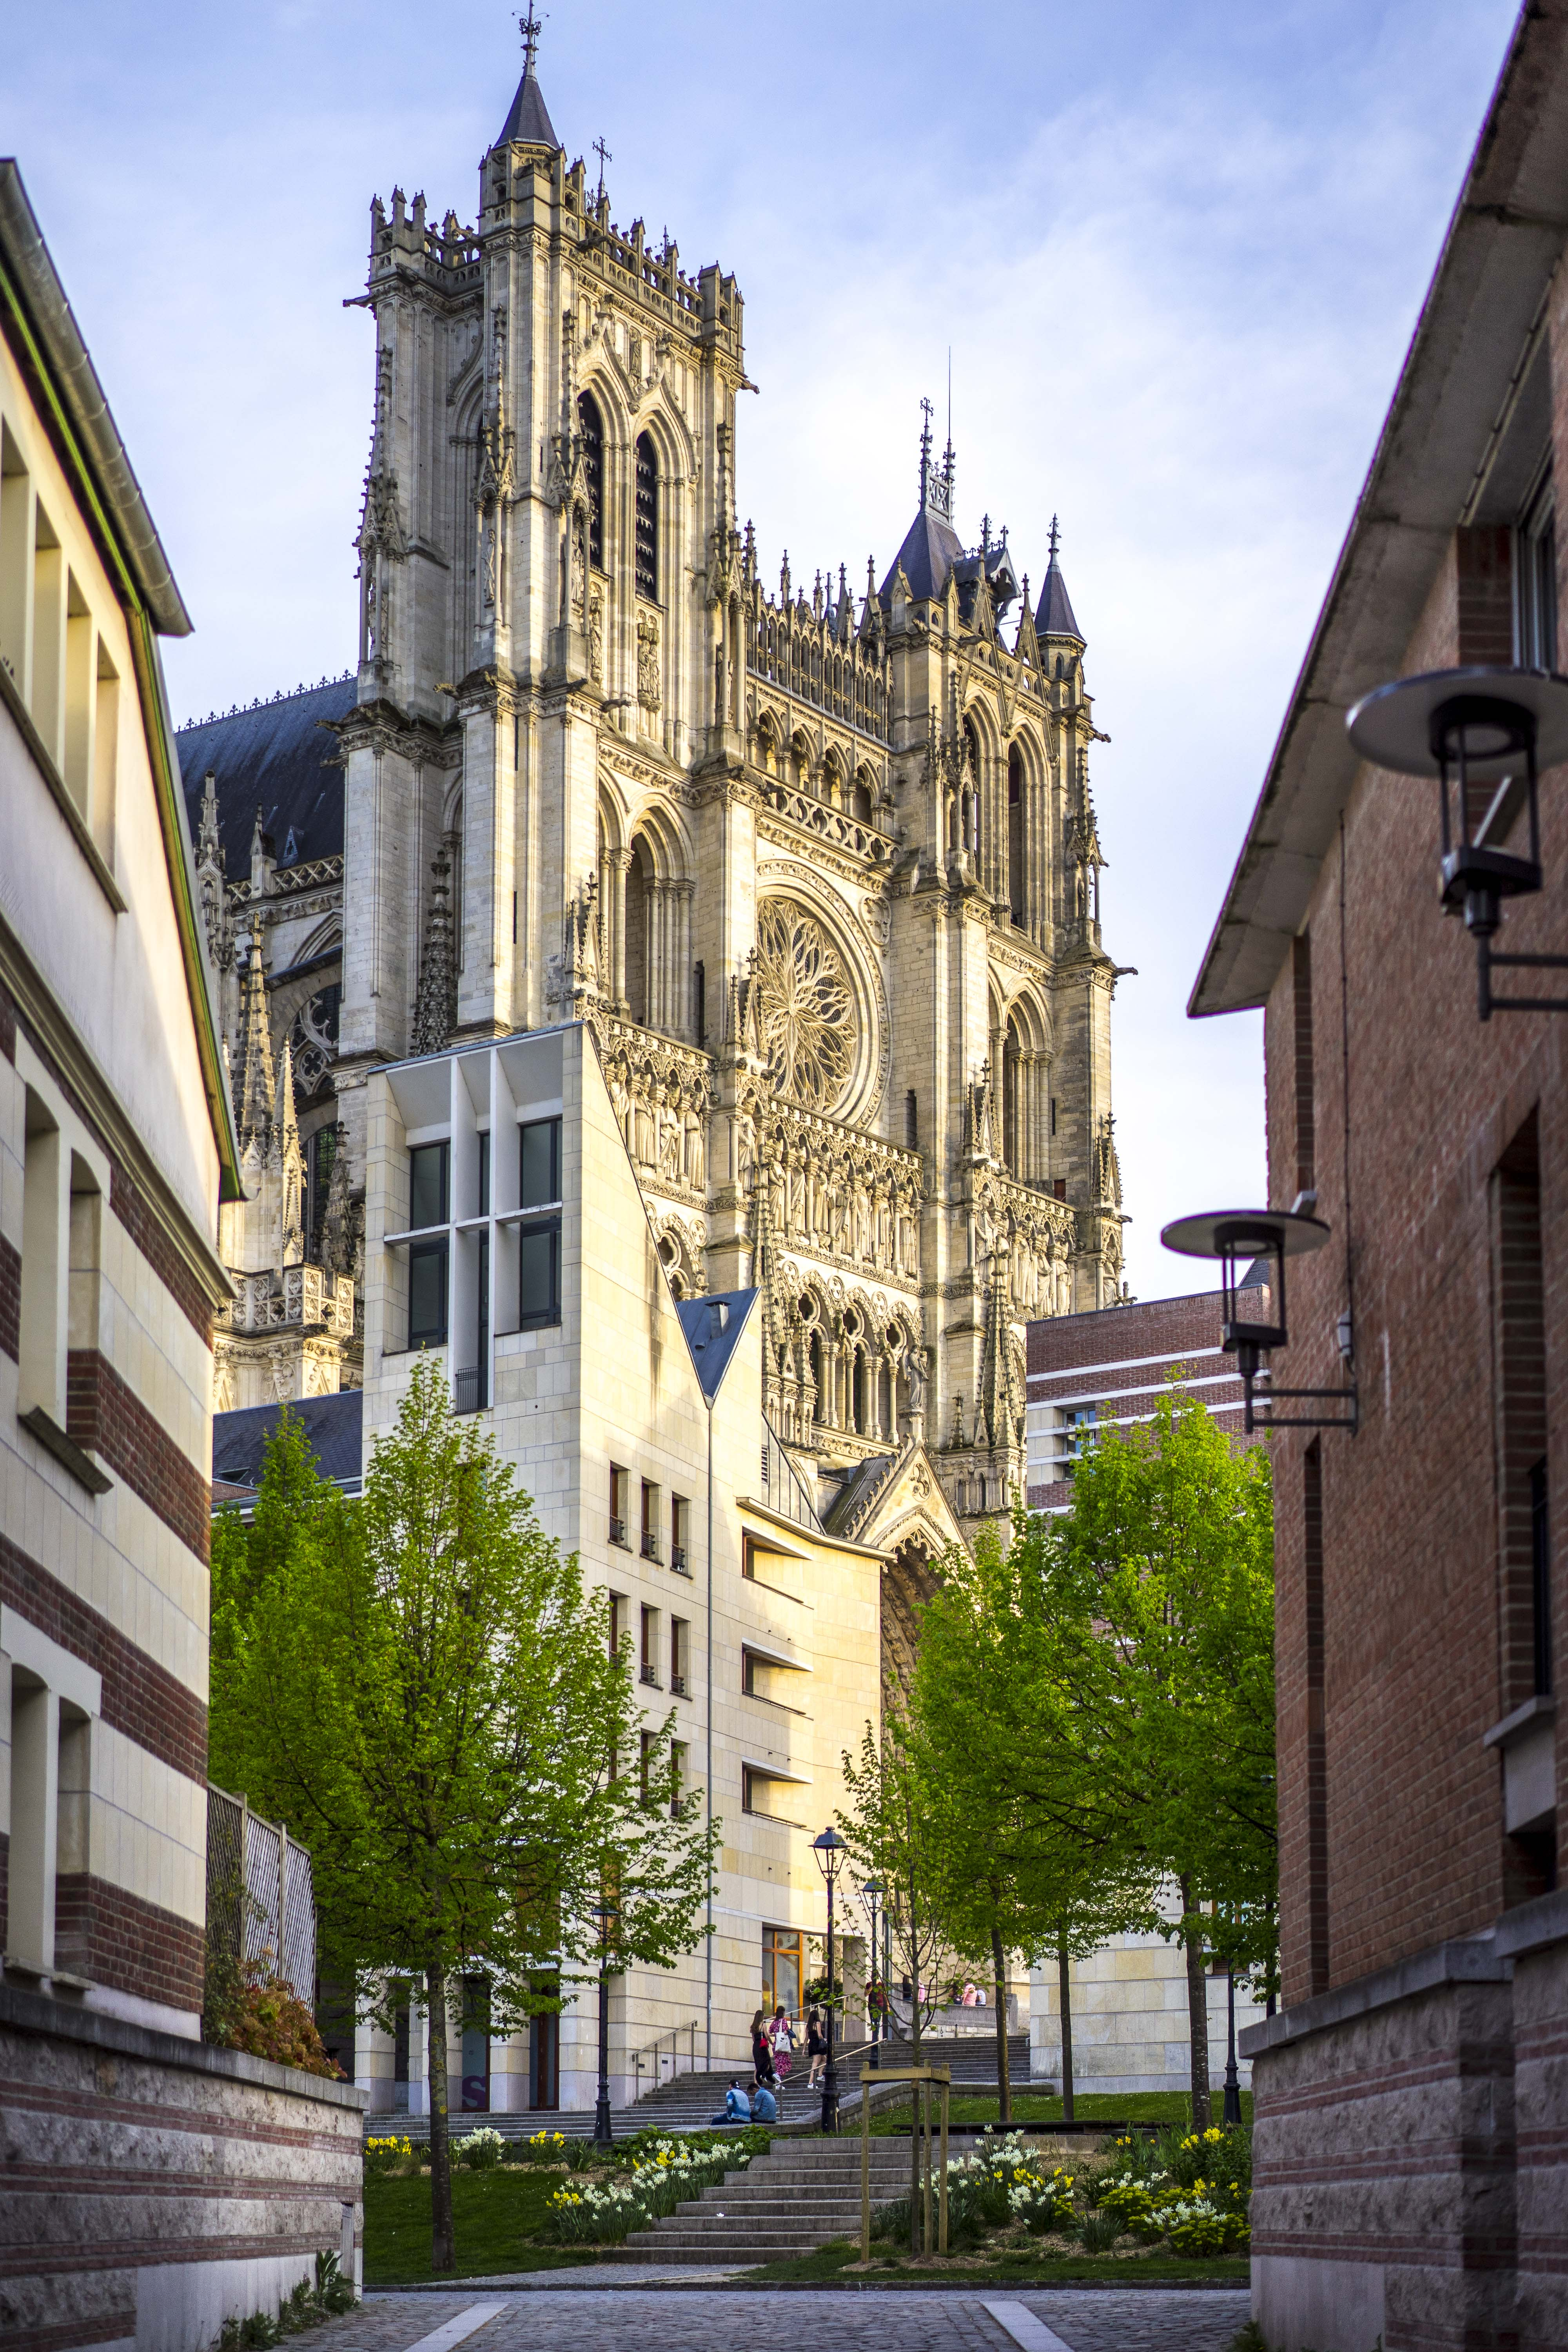 Amiens, France - Walking to the Cathedral